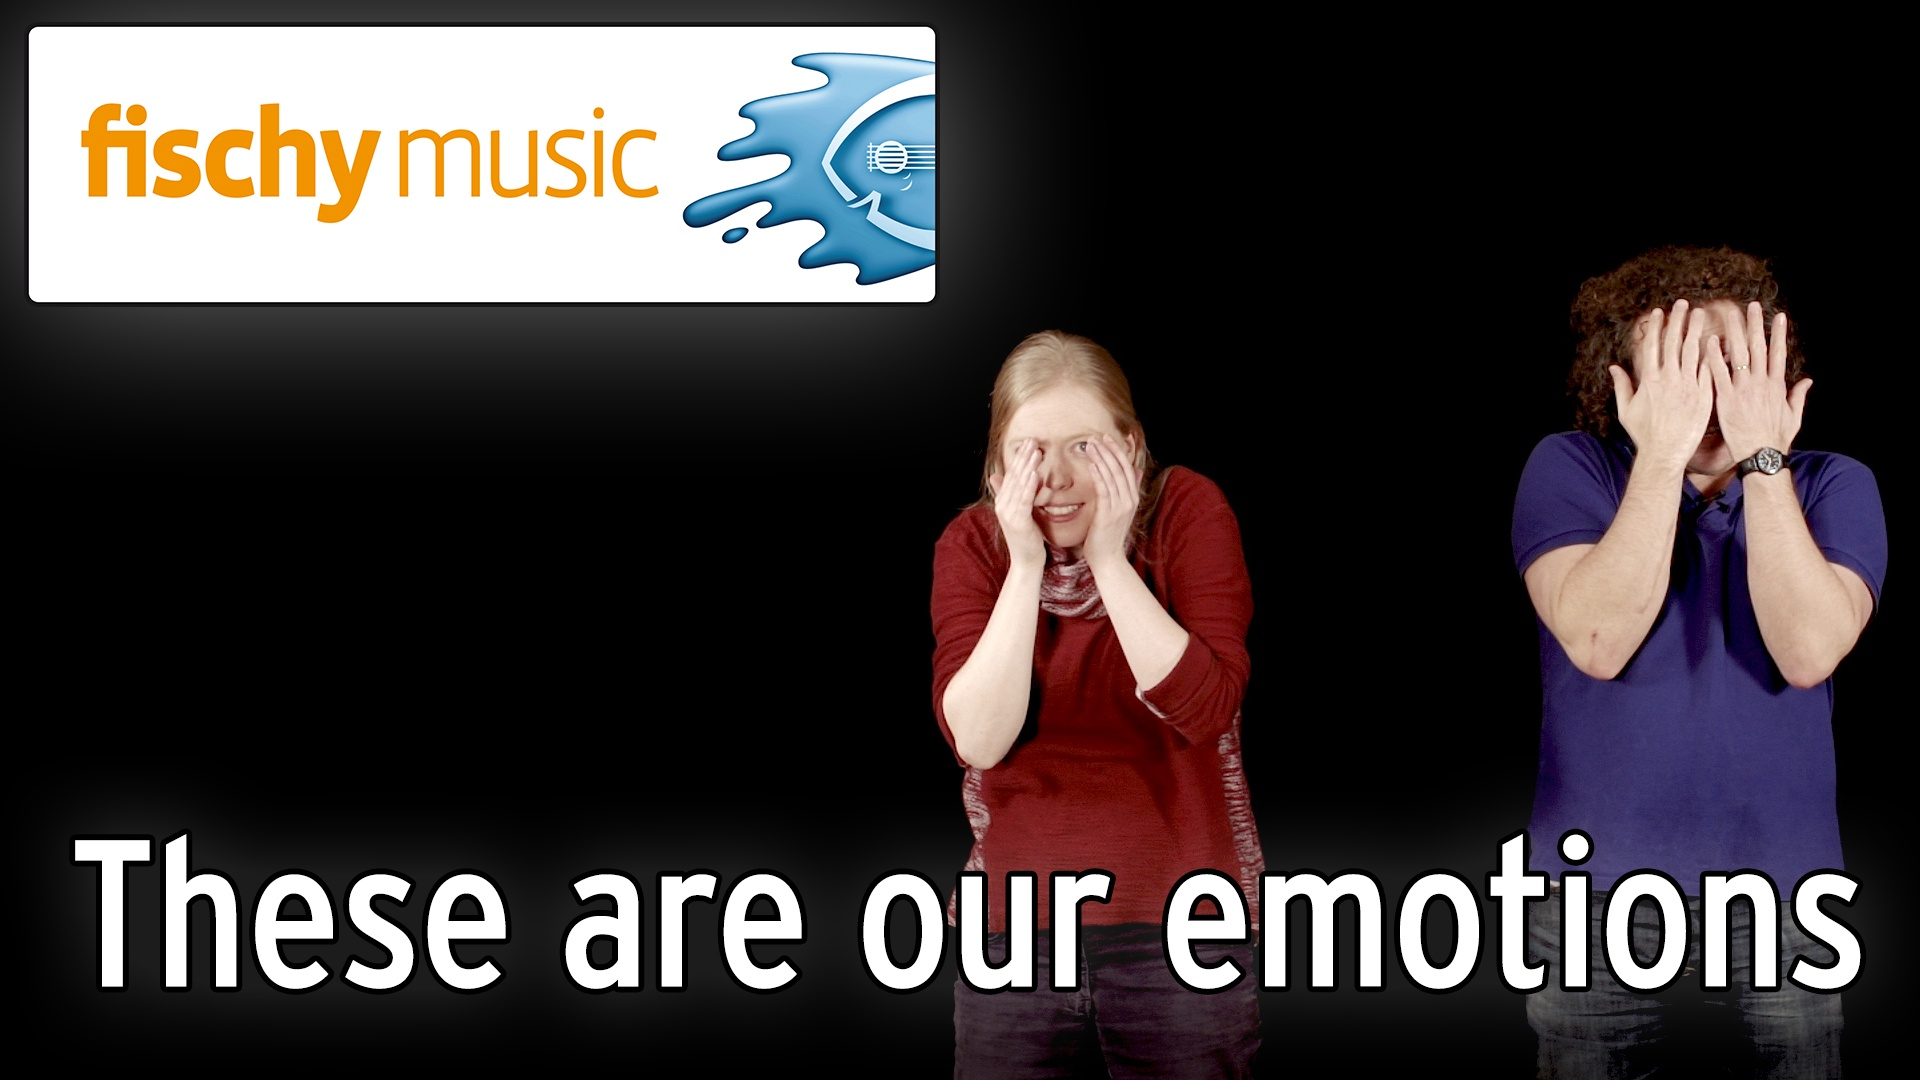 These are our emotions